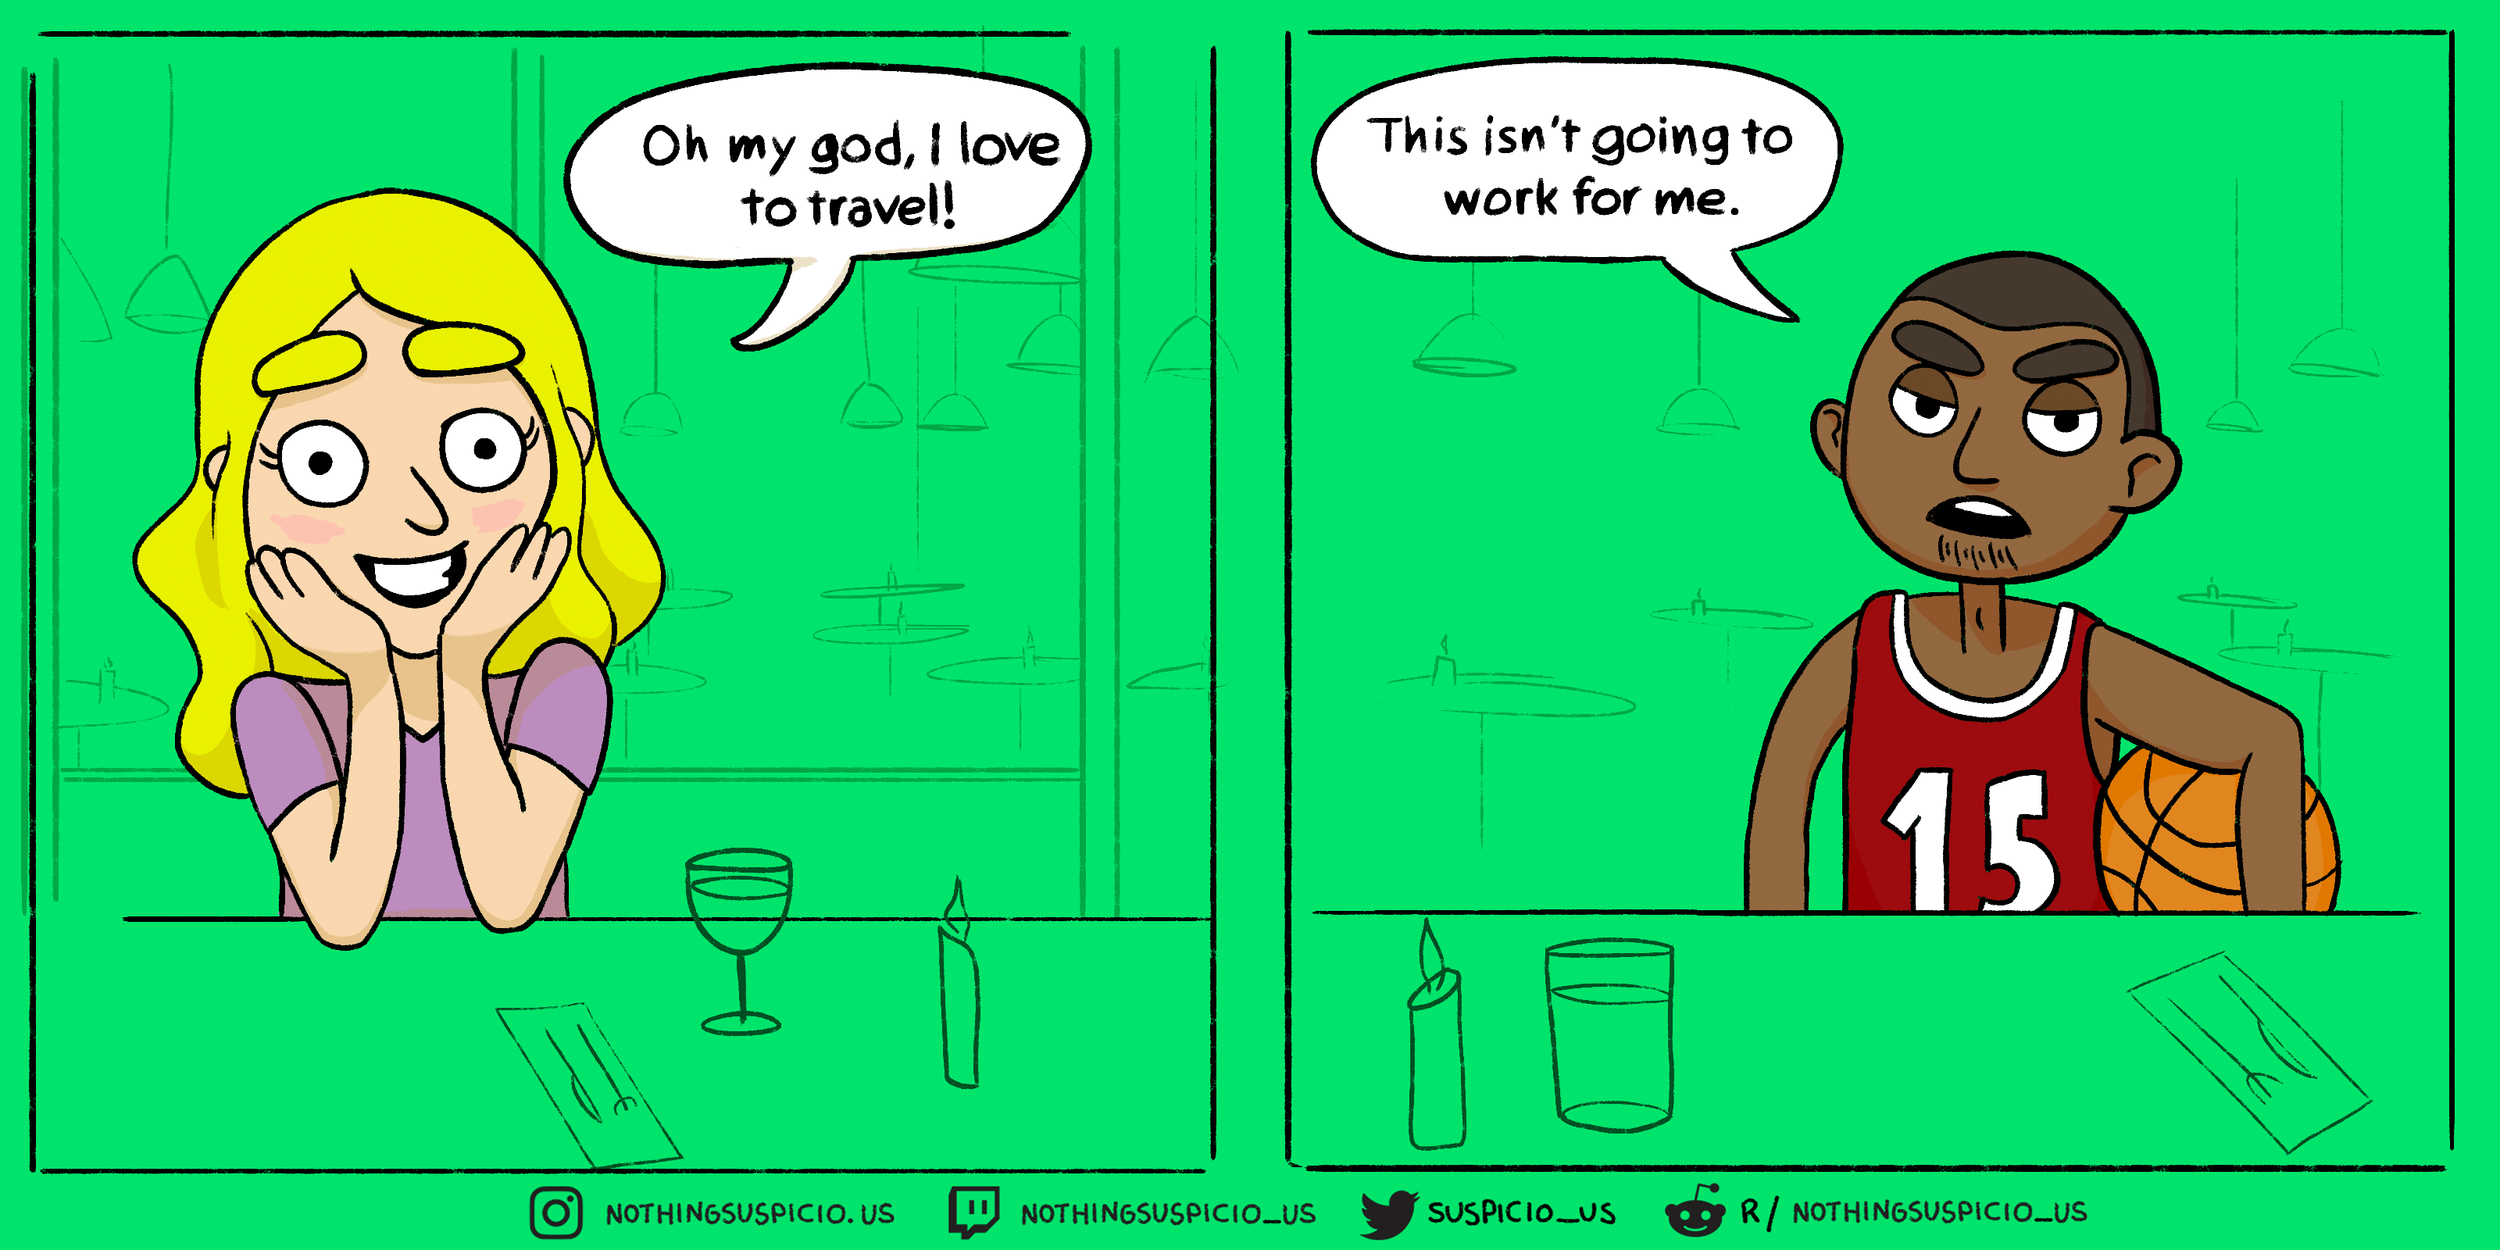 0248 - Travel_Compiled.png